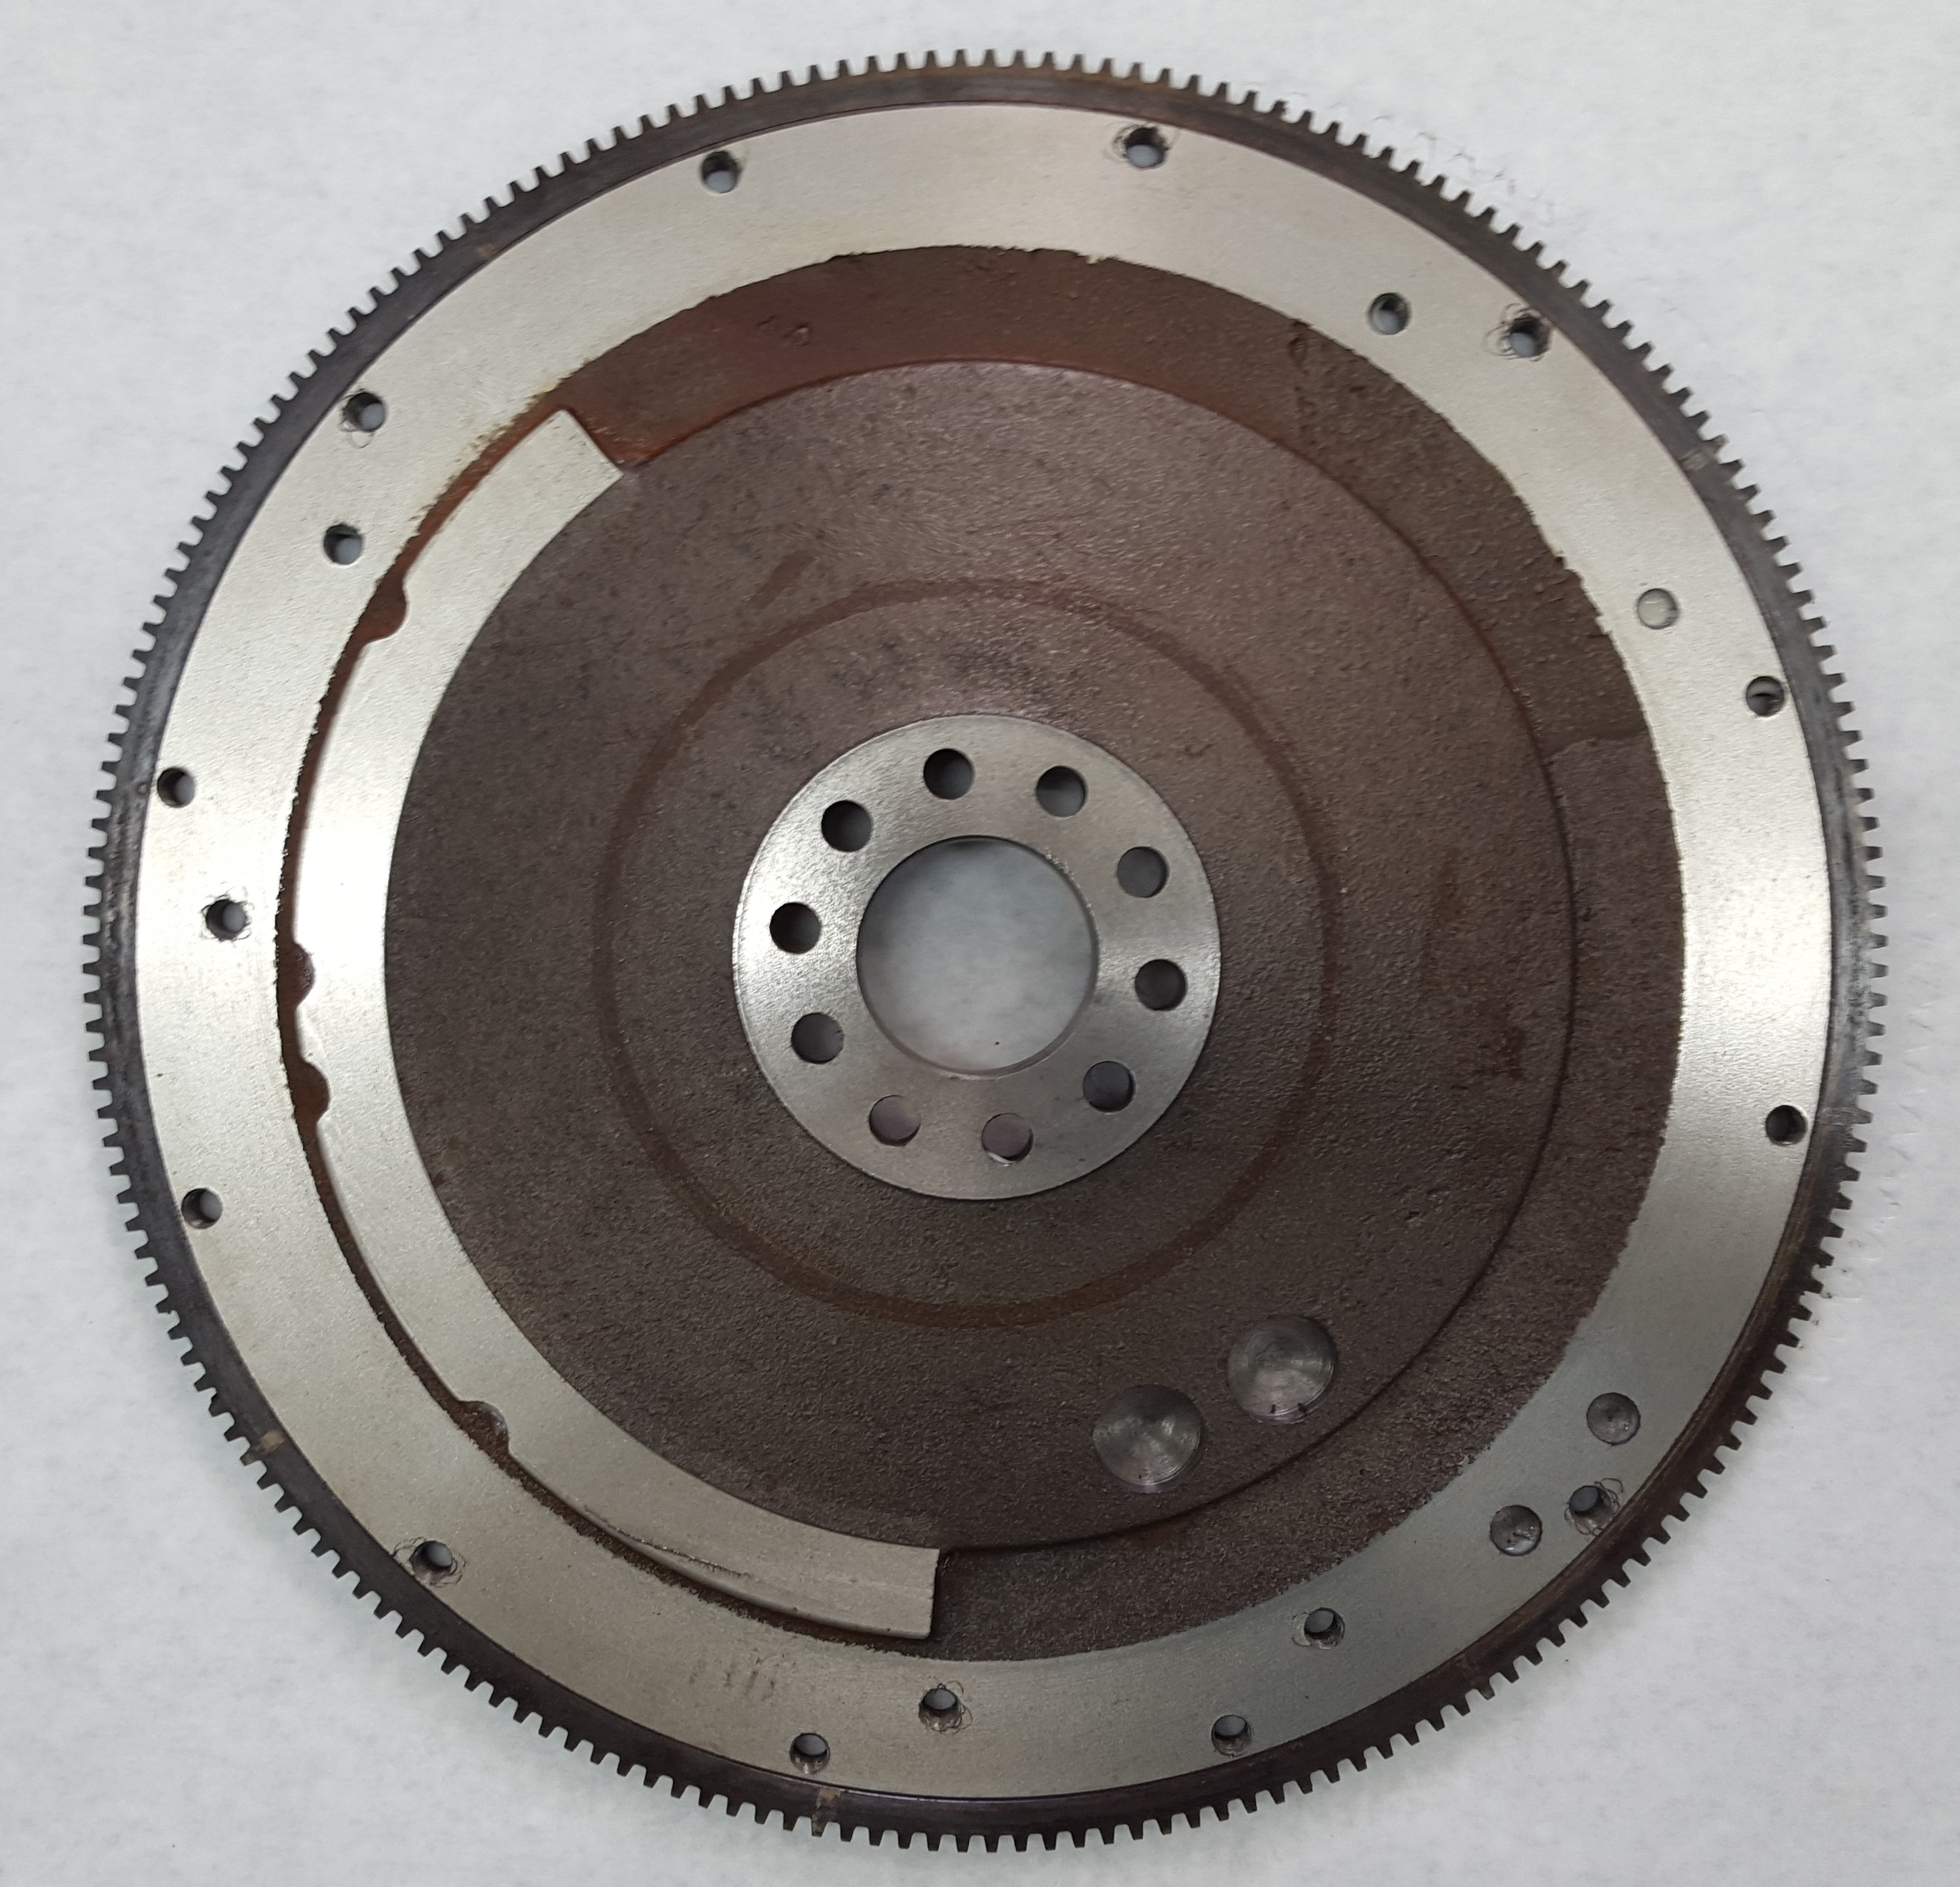 151115R31 Navistar Flywheel Rear View